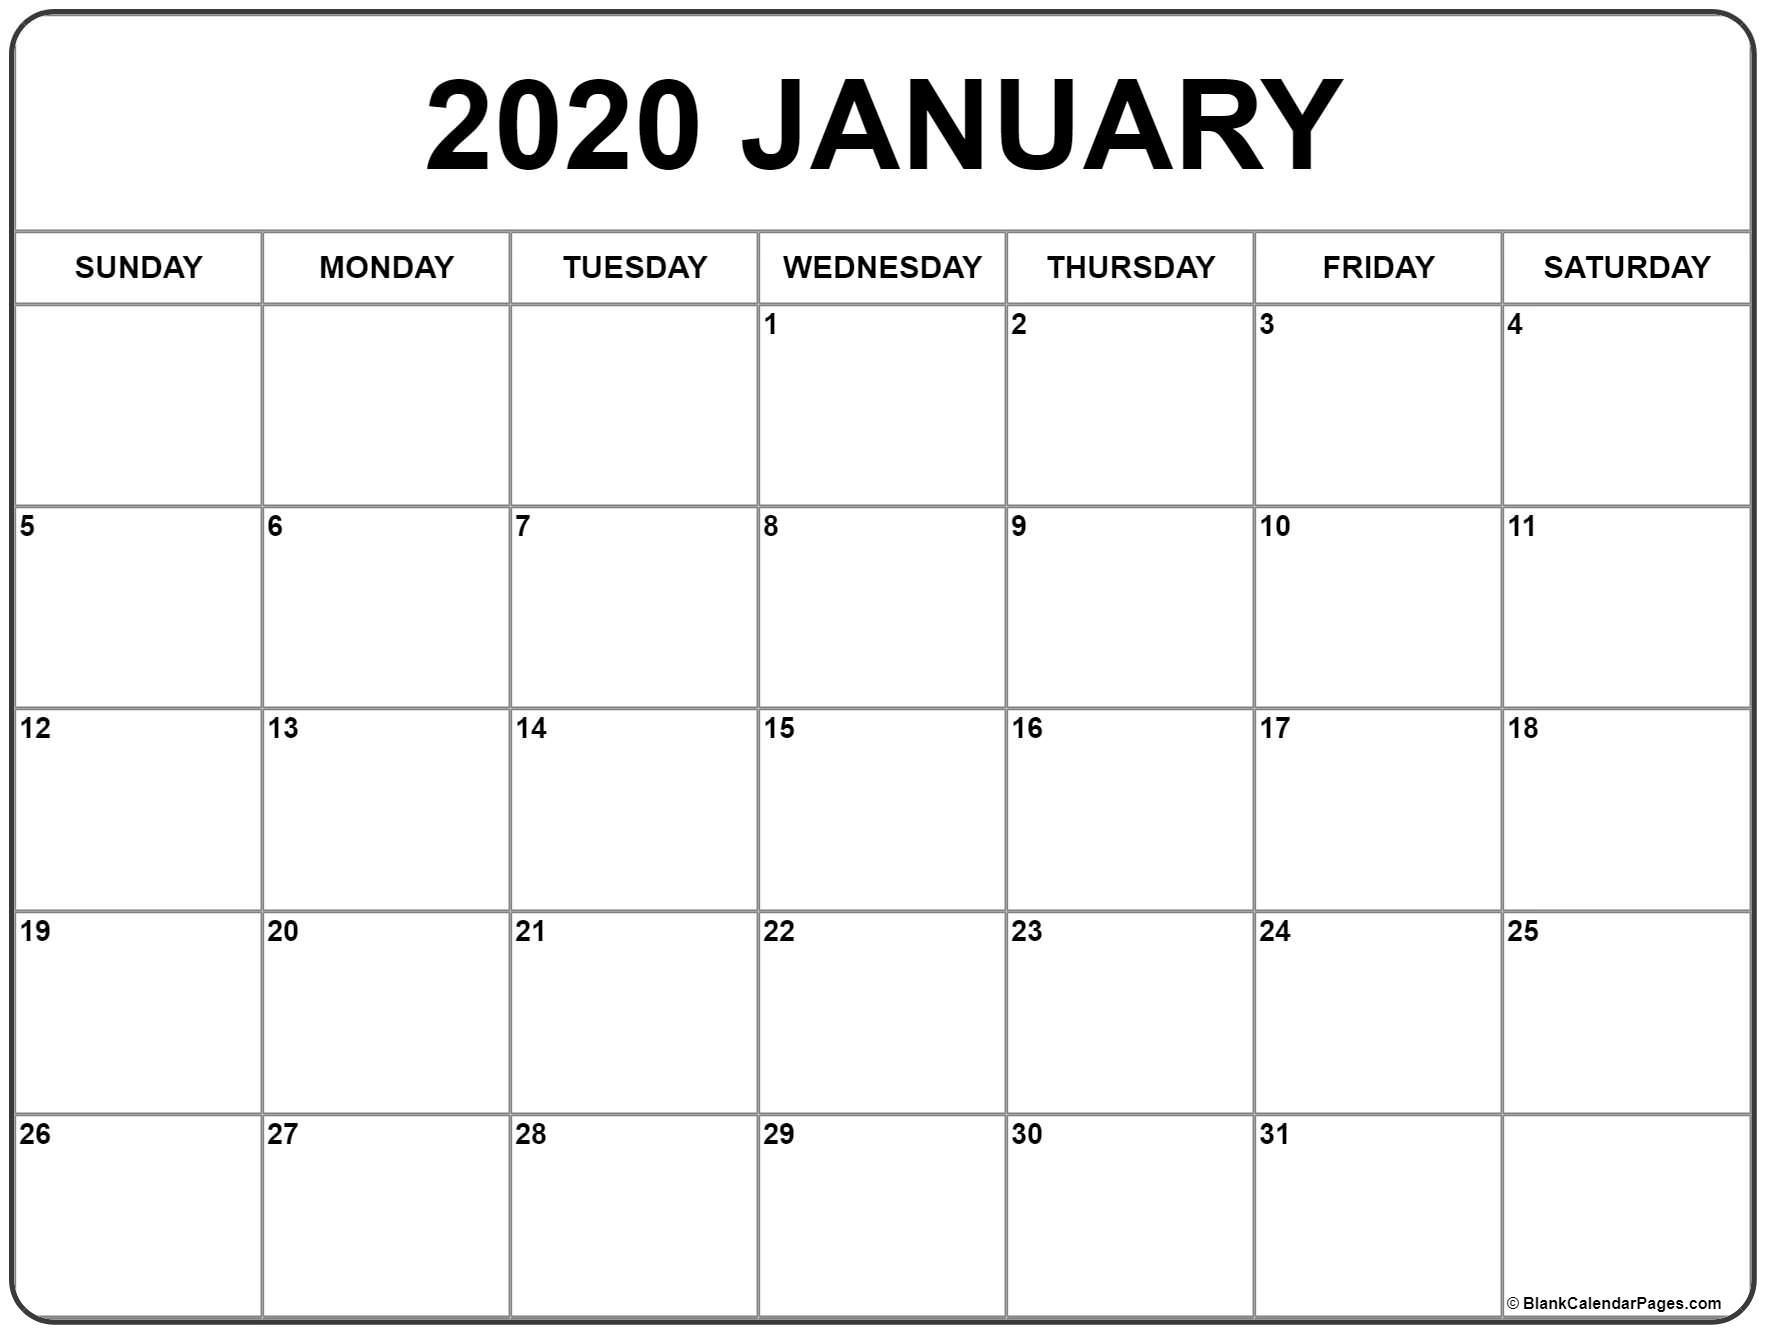 January 2020 Calendar | Free Printable Monthly Calendars within Free Printable 2020 Calendars-Monthly